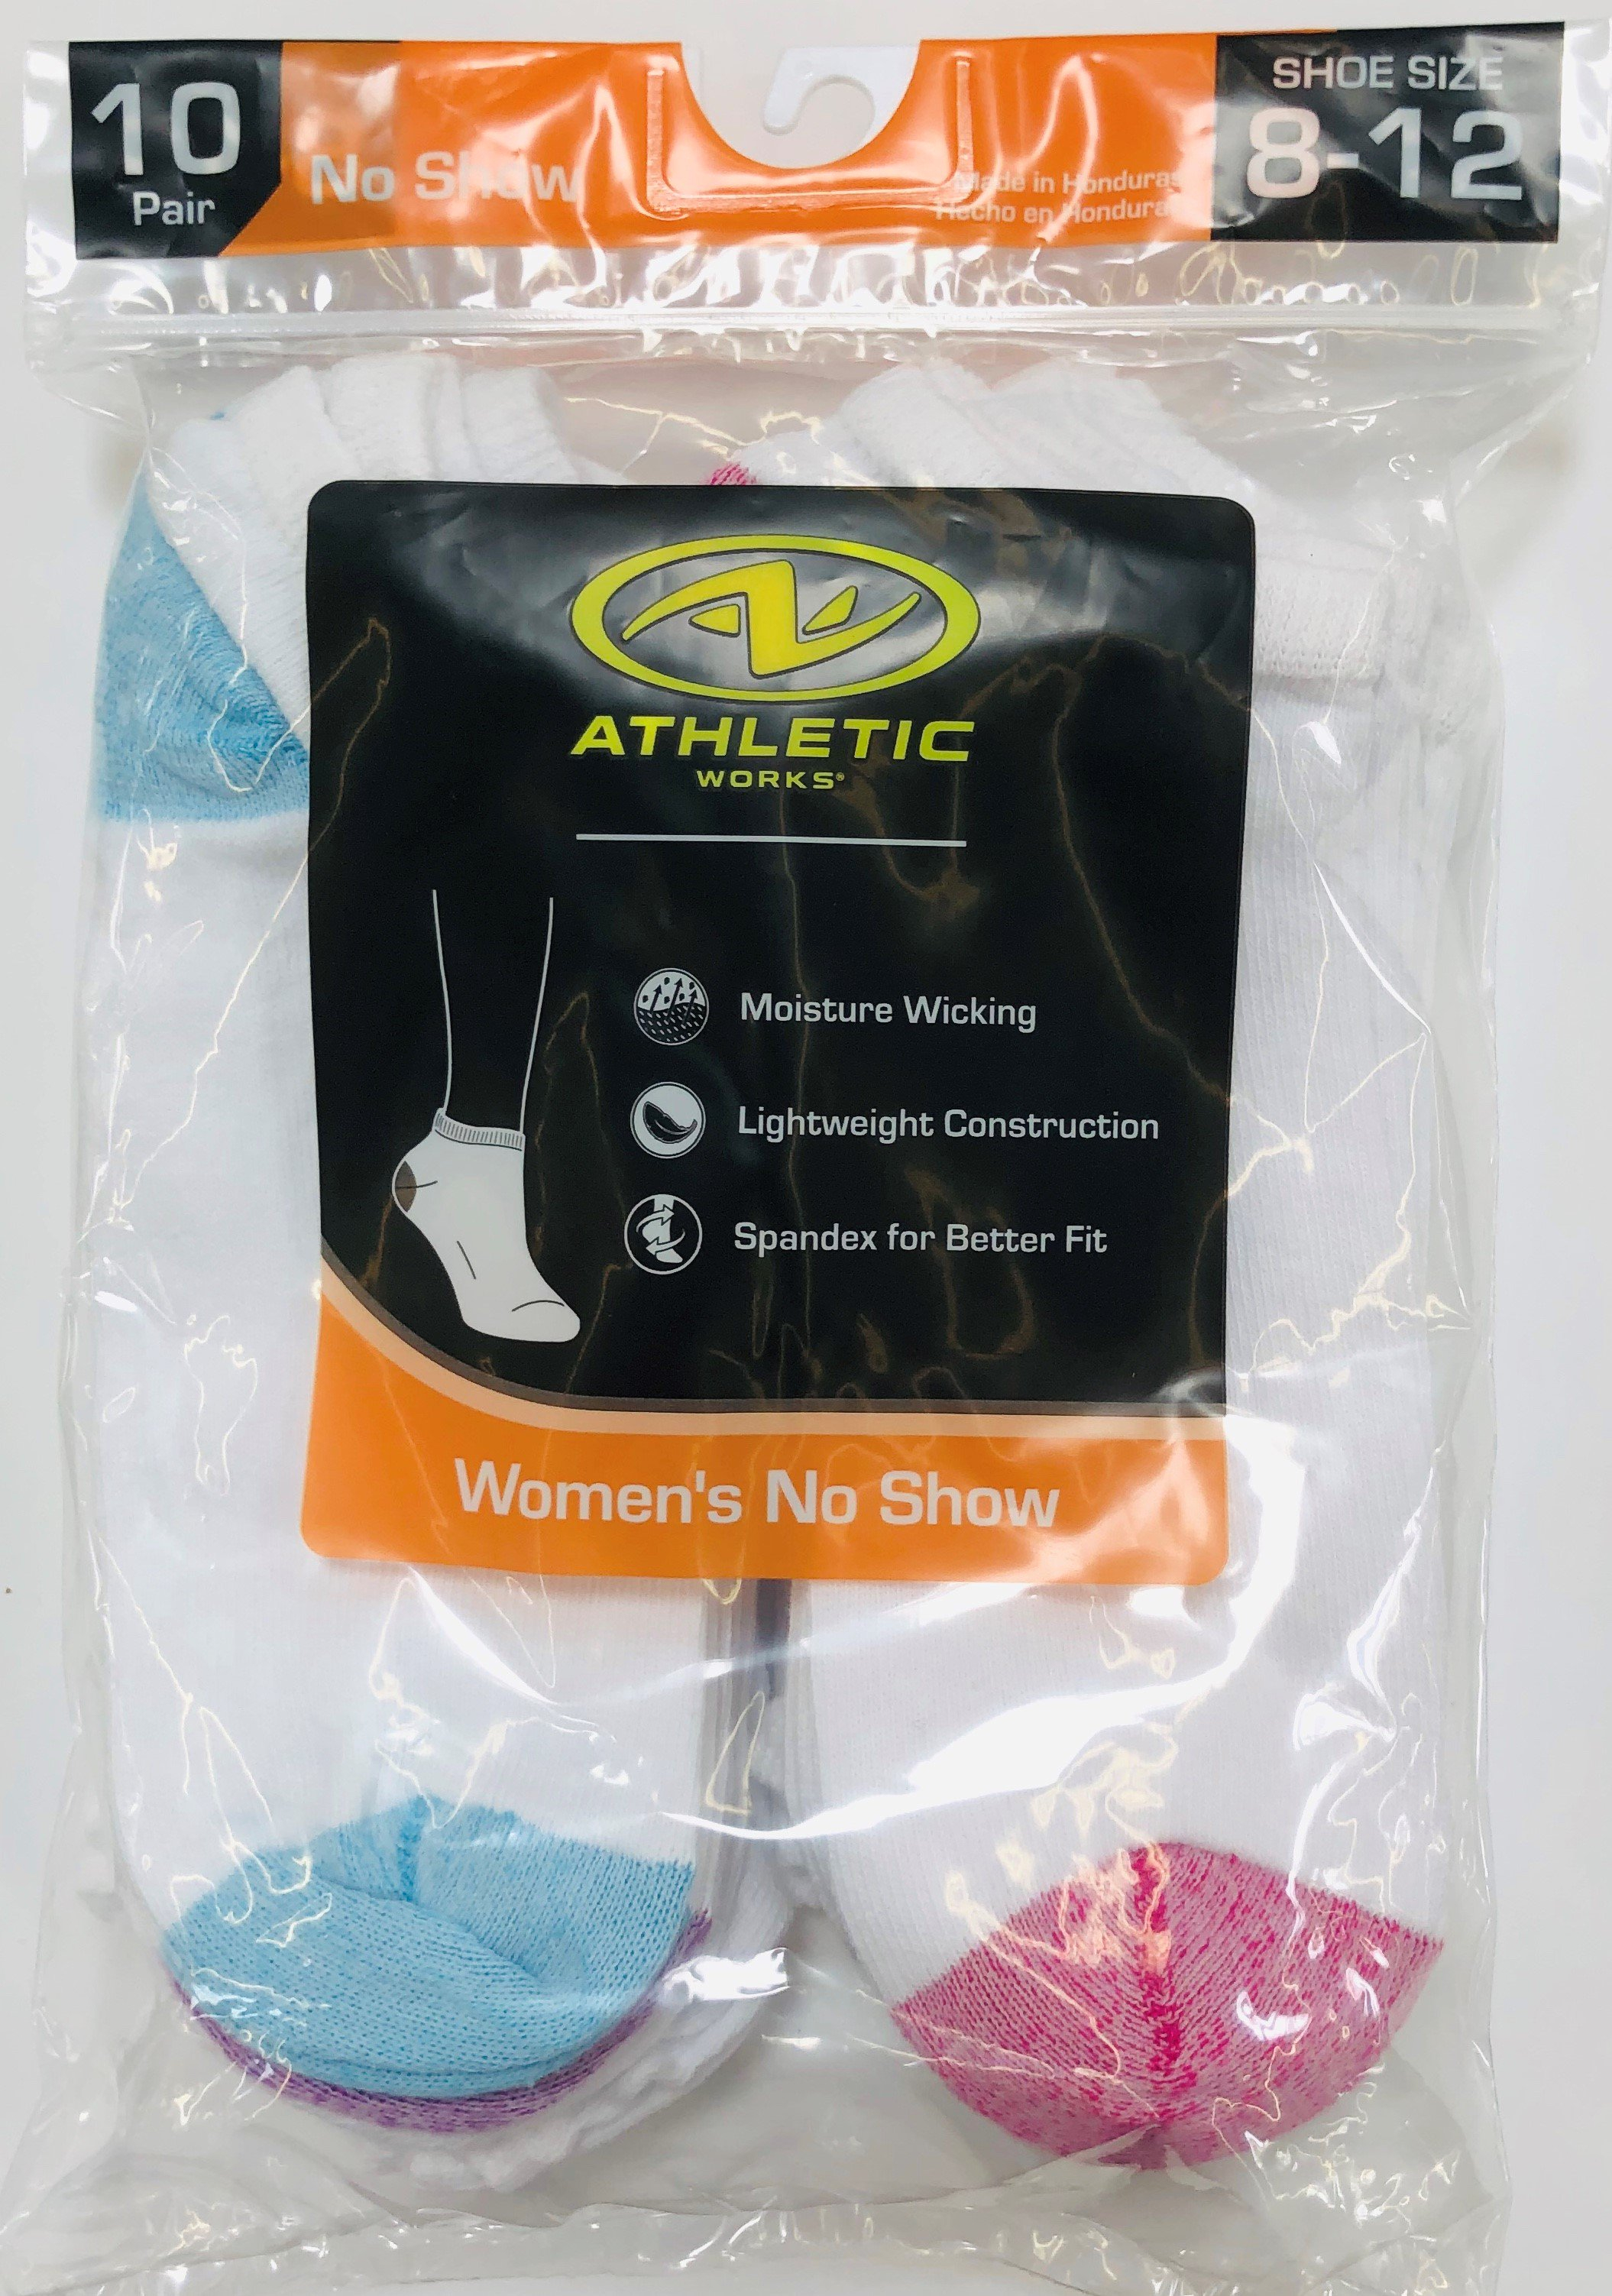 Athletic Works Women's No Show Socks, 10 Pack, 8-12, White Assorted